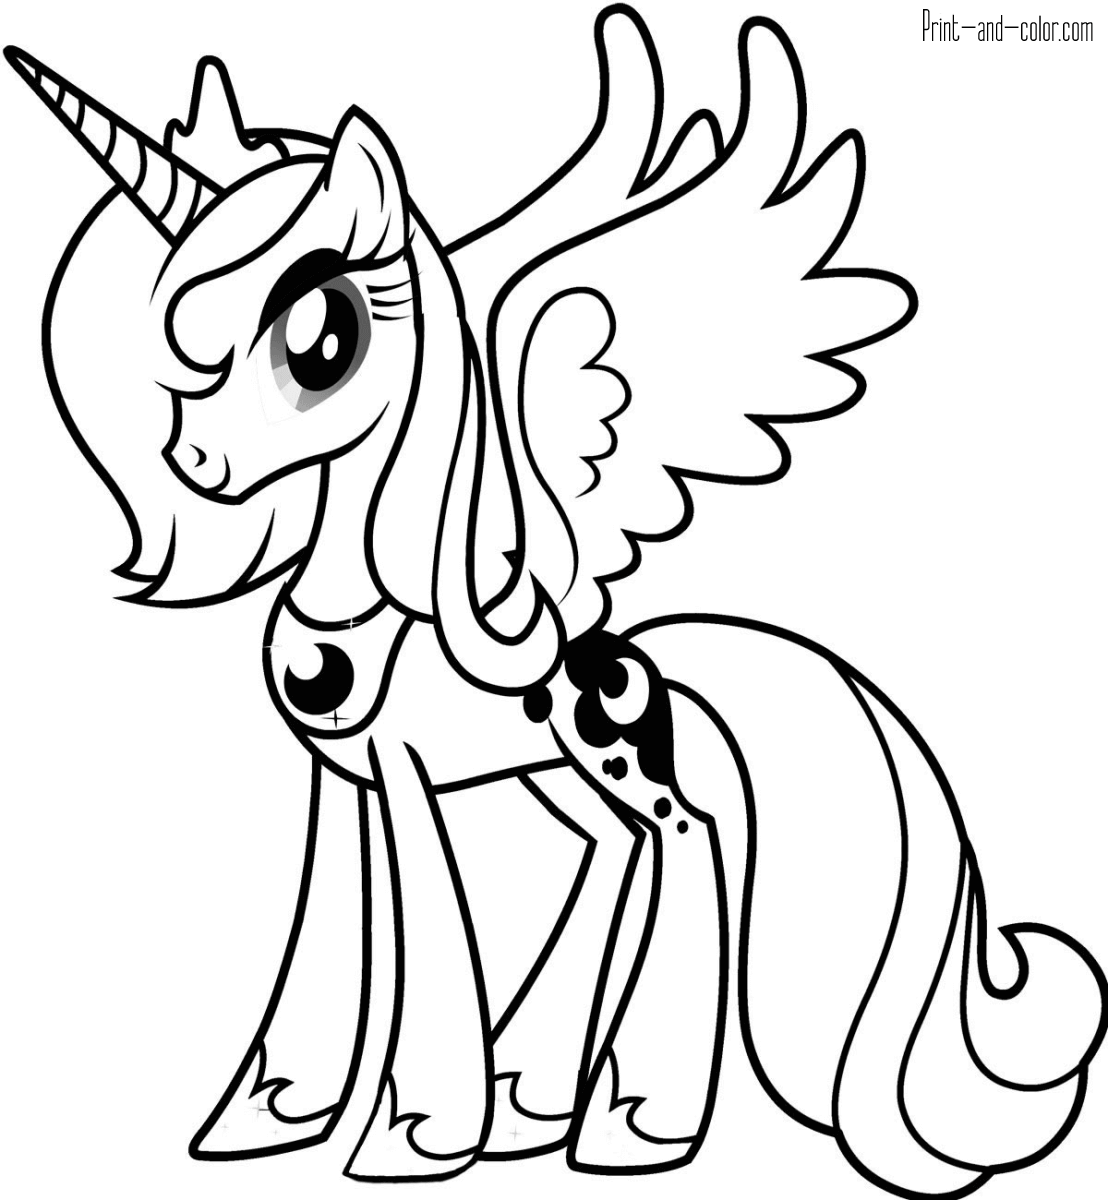 my little pony colors my little pony coloring pages print and colorcom pony little my colors